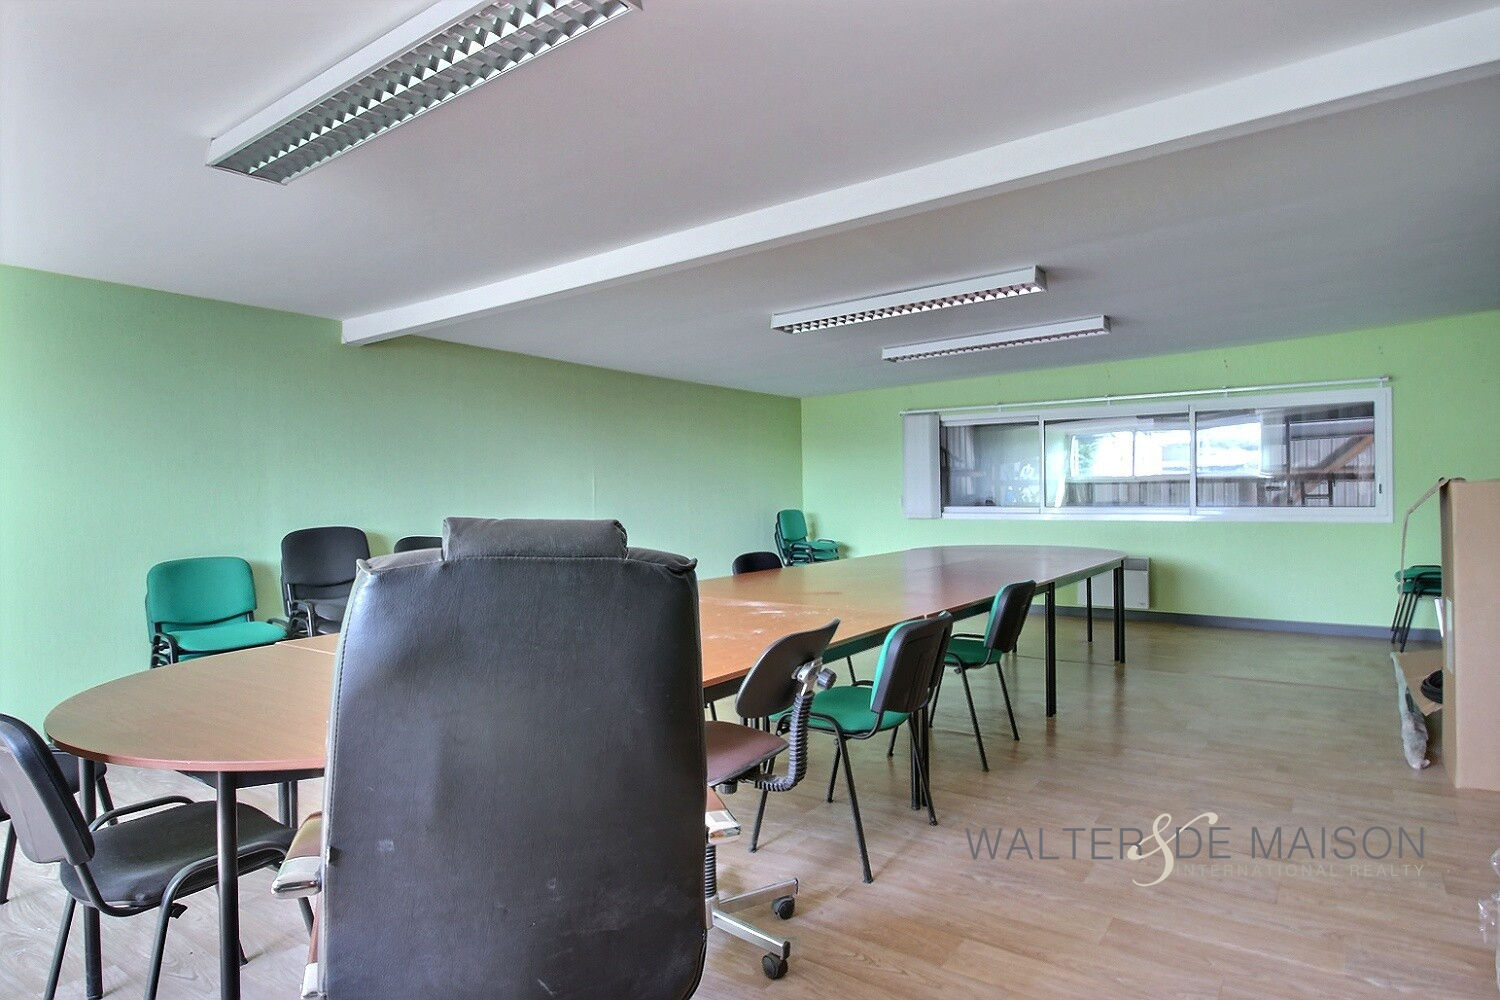 Local professionnel 780 m²